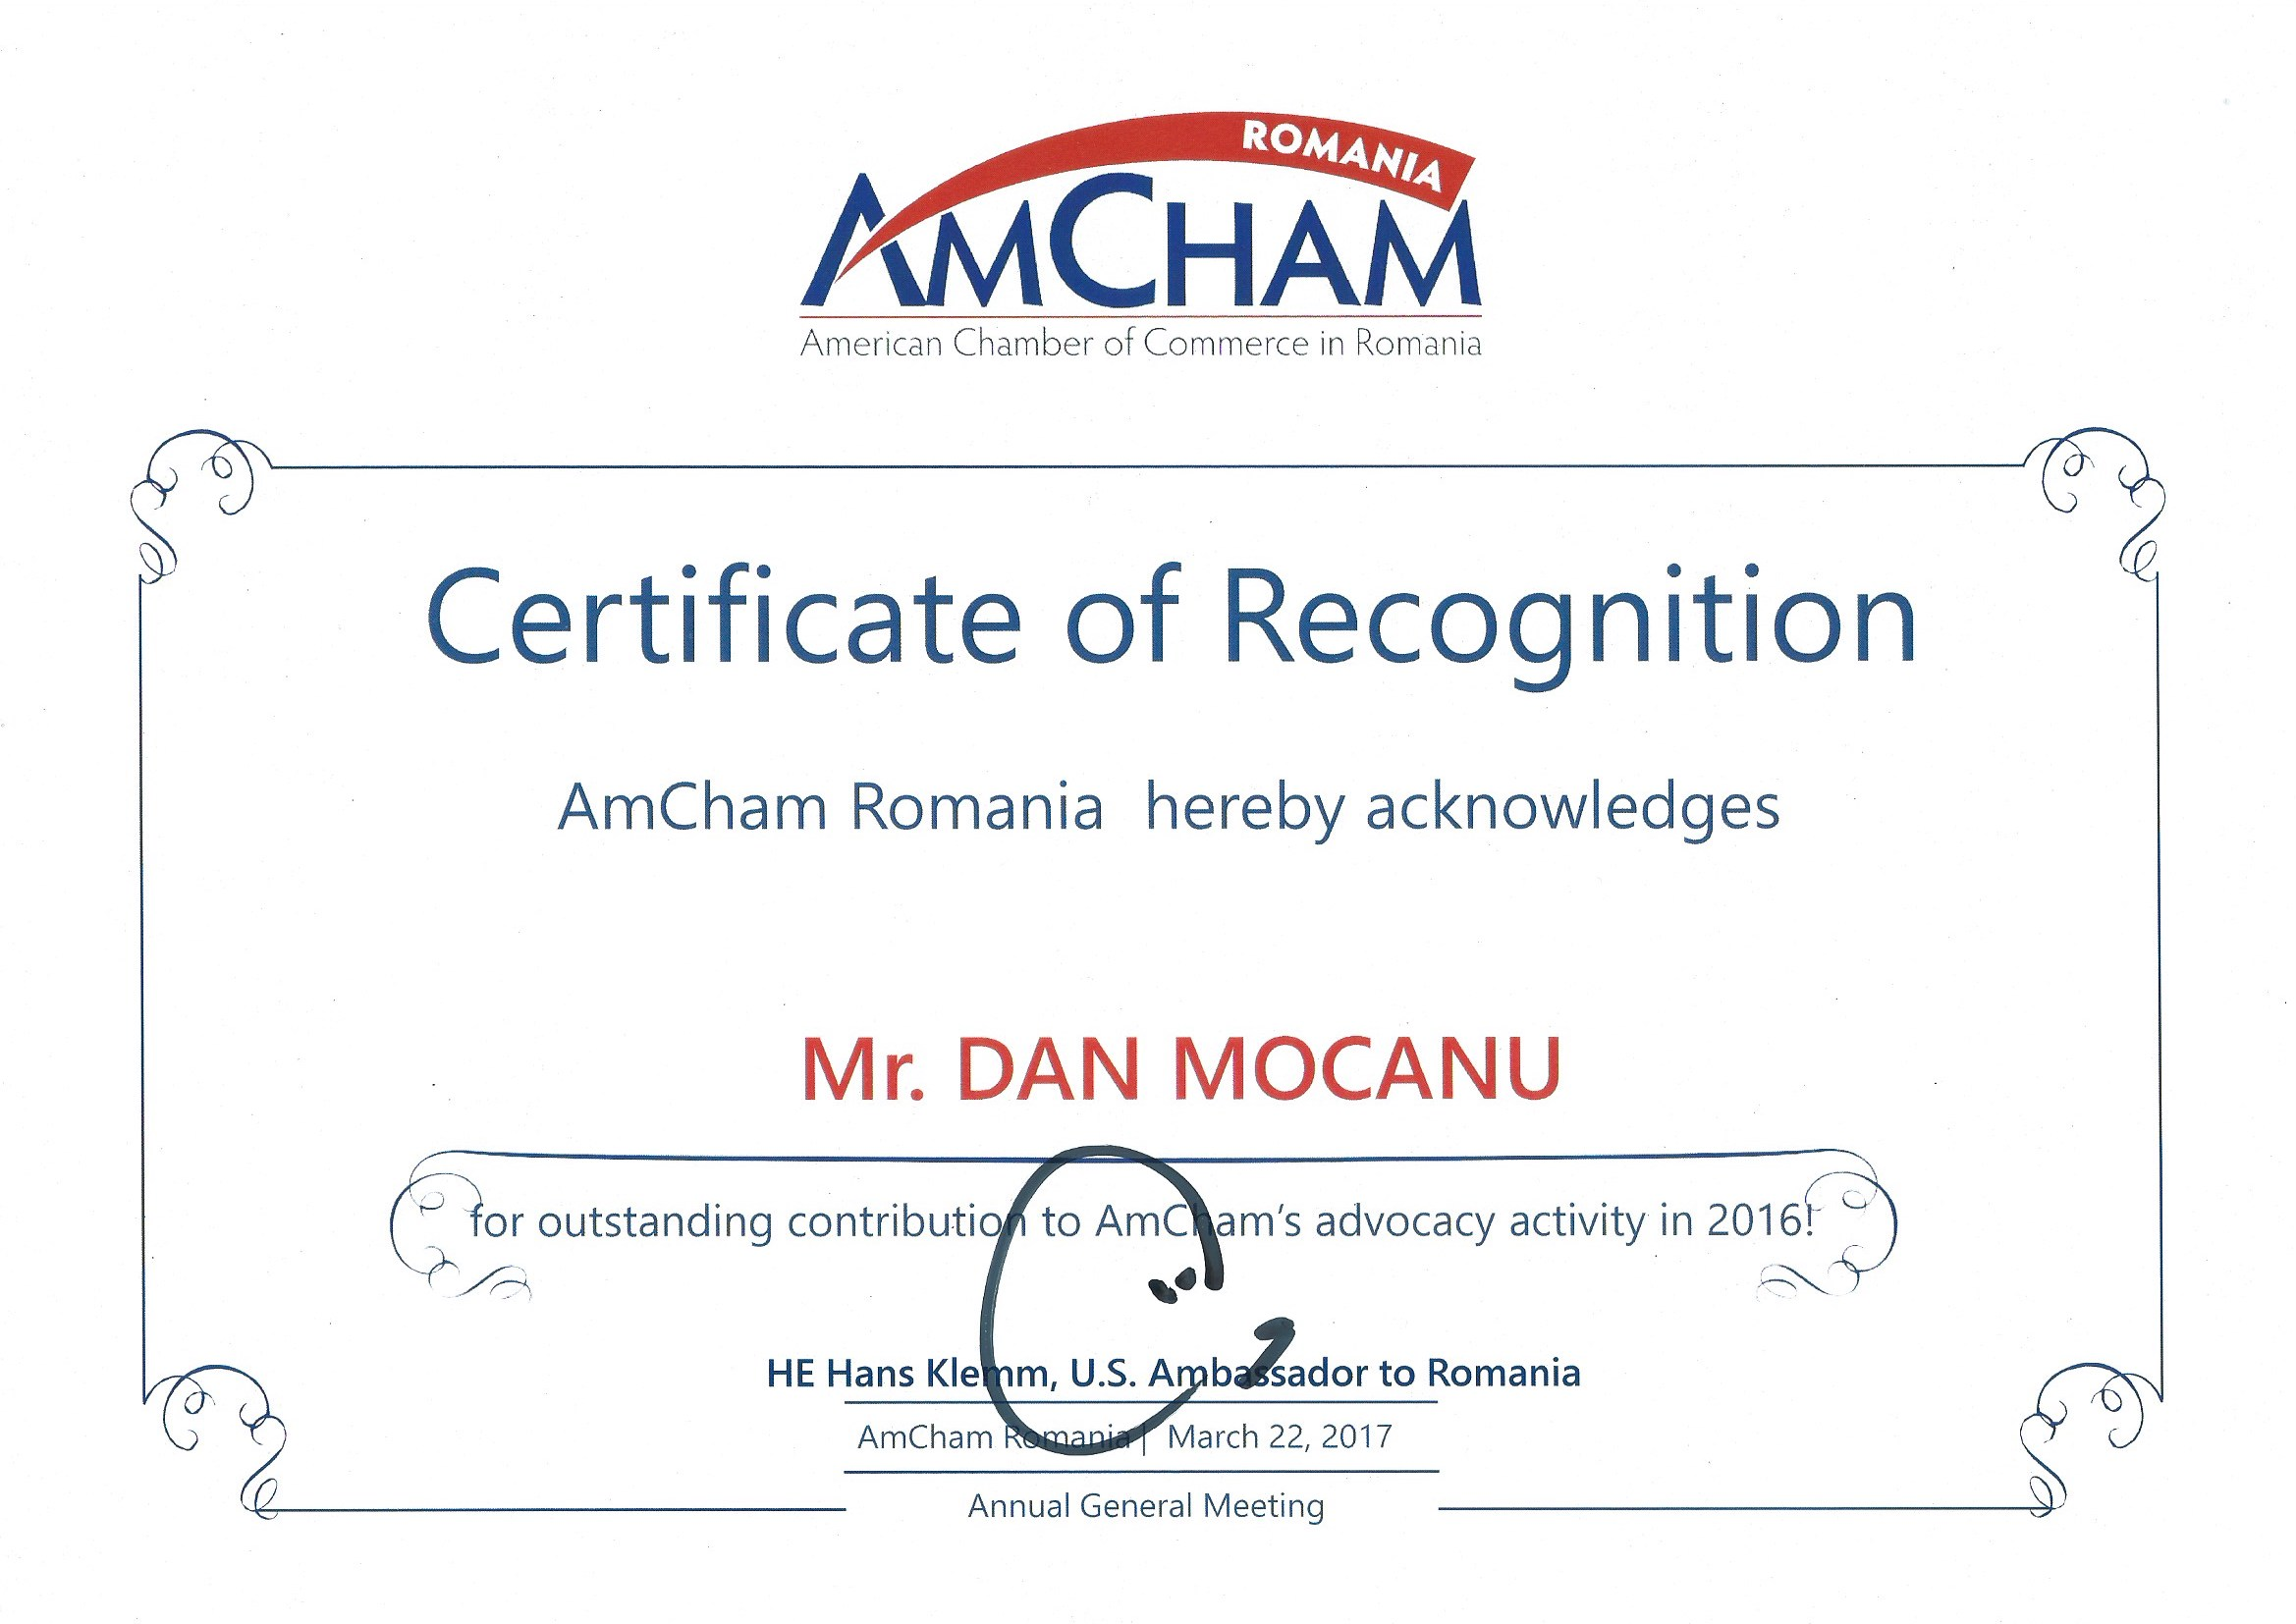 Dan mocanu receives a certificate of recognition at the amchams dan mocanu receives a certificate of recognition at the amchams annual general assembly on march 22 2017 1betcityfo Choice Image